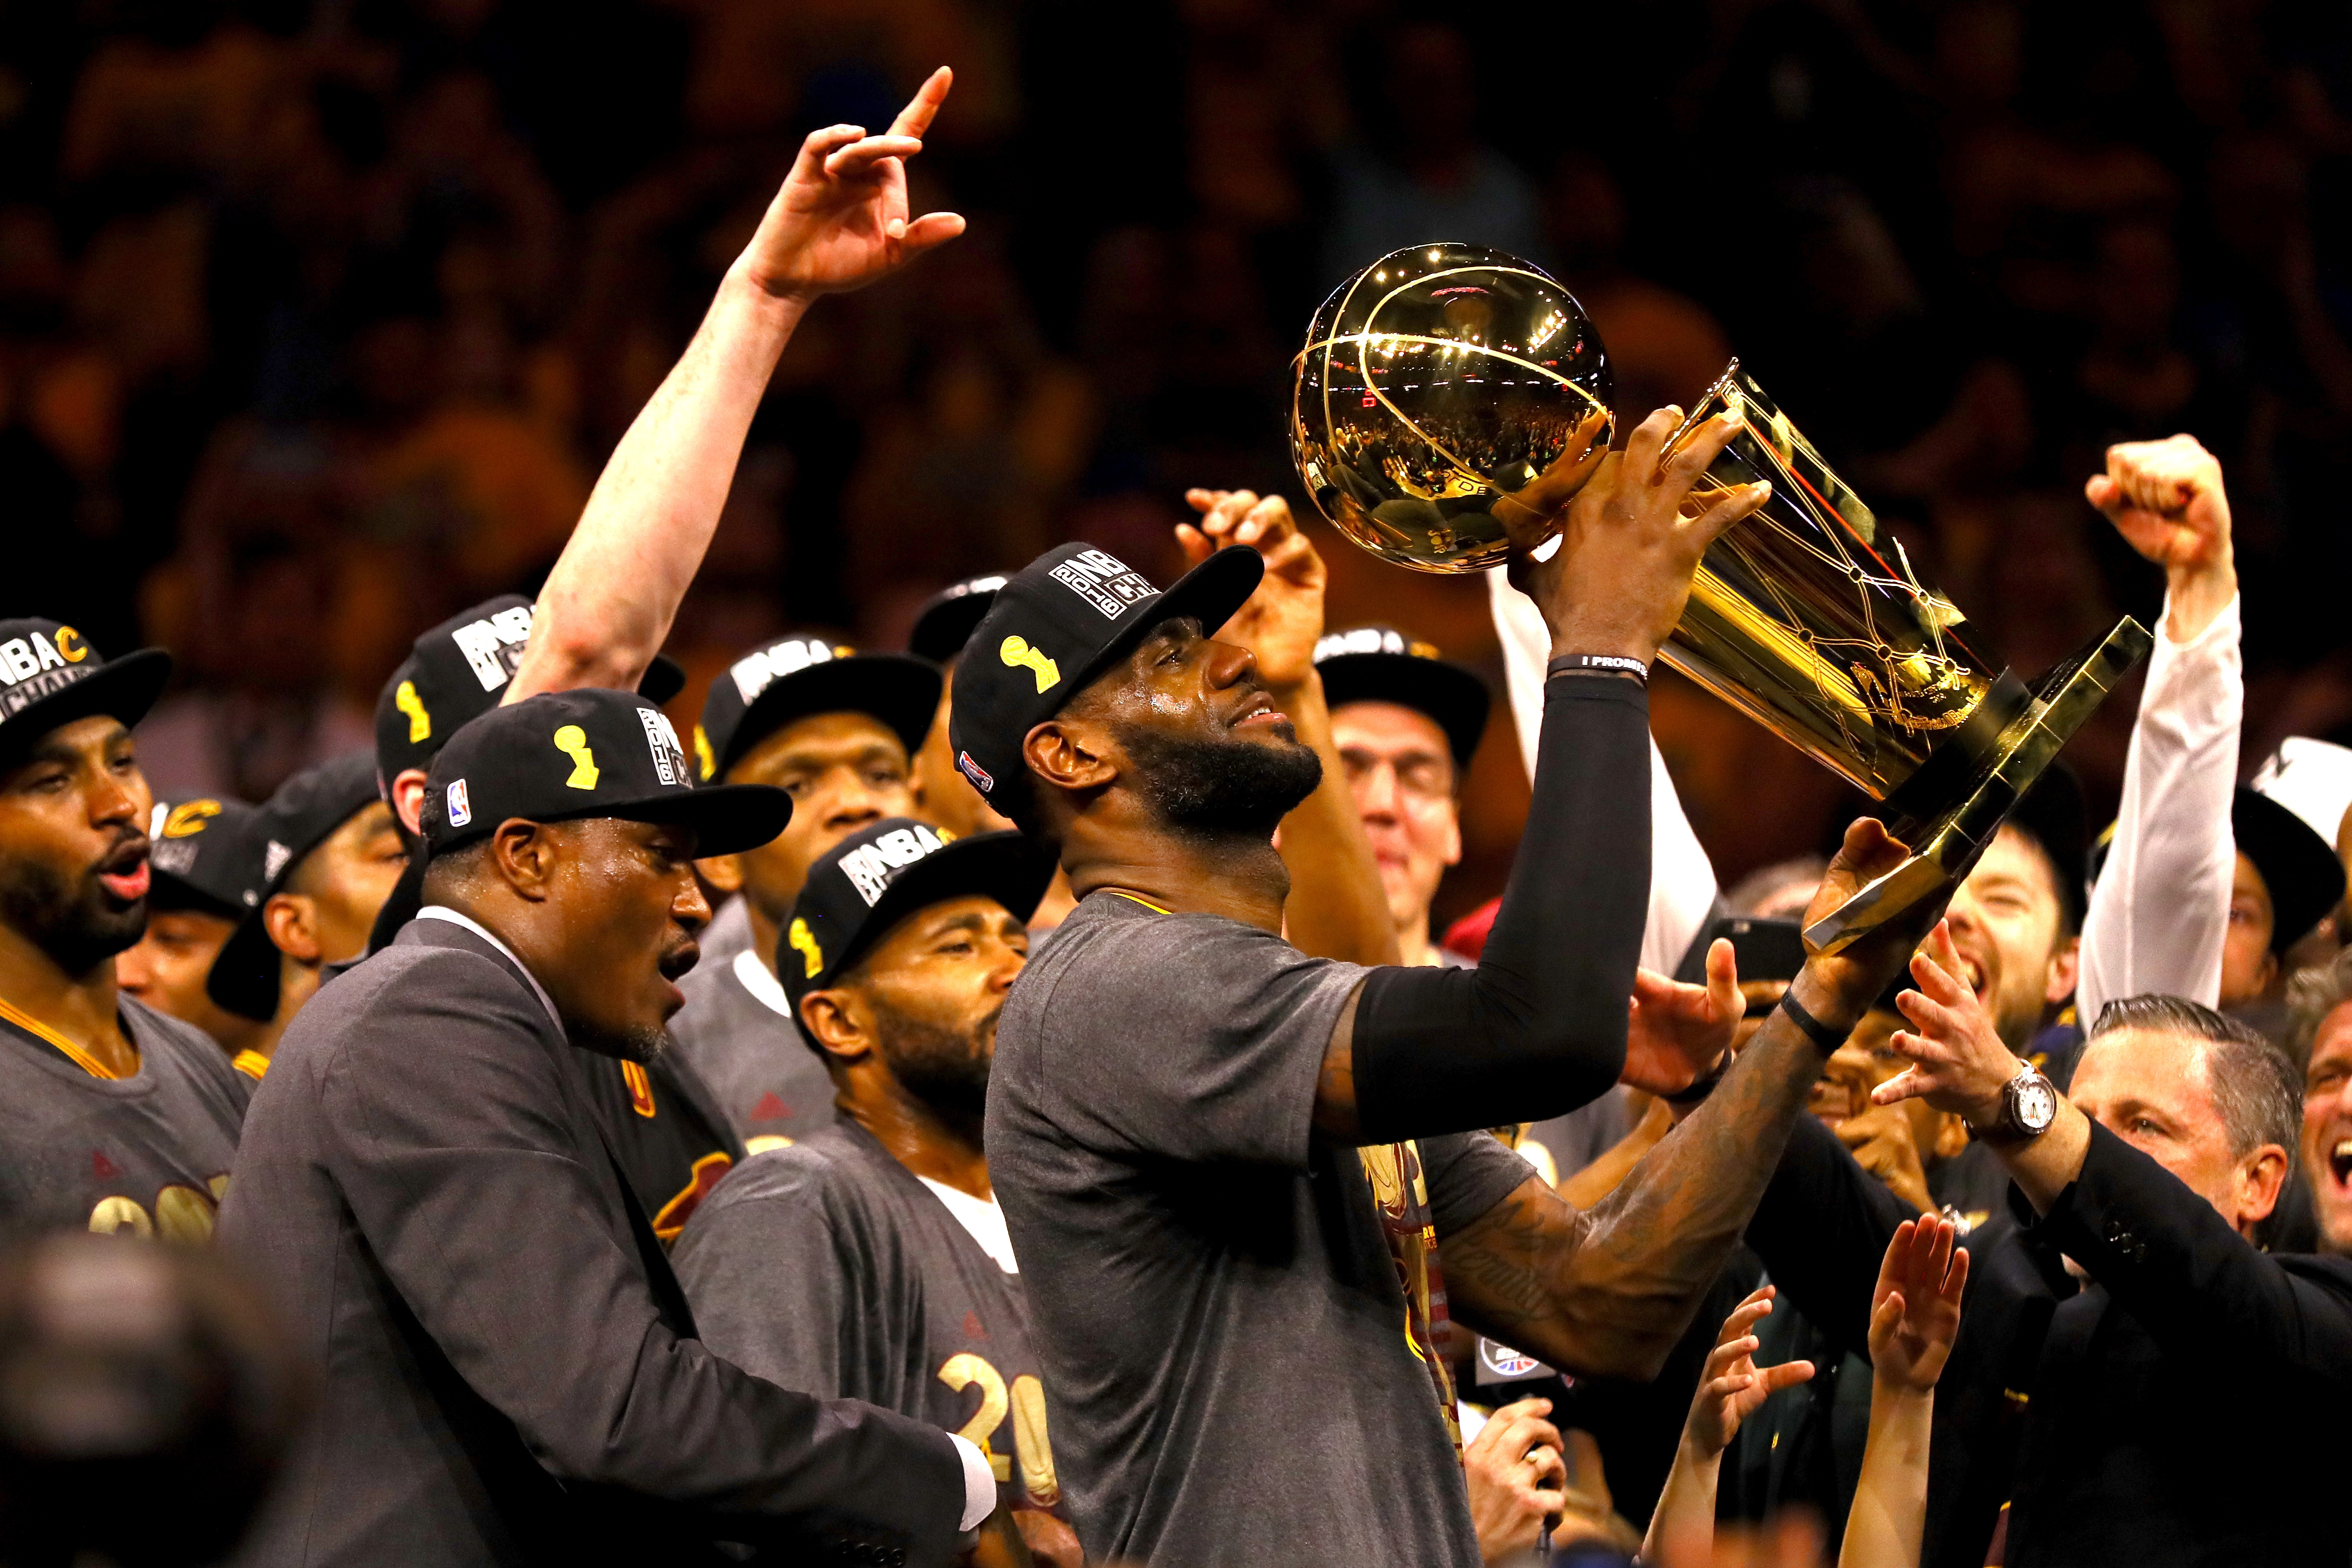 LeBron James confirms he'll stay in Cleveland next year